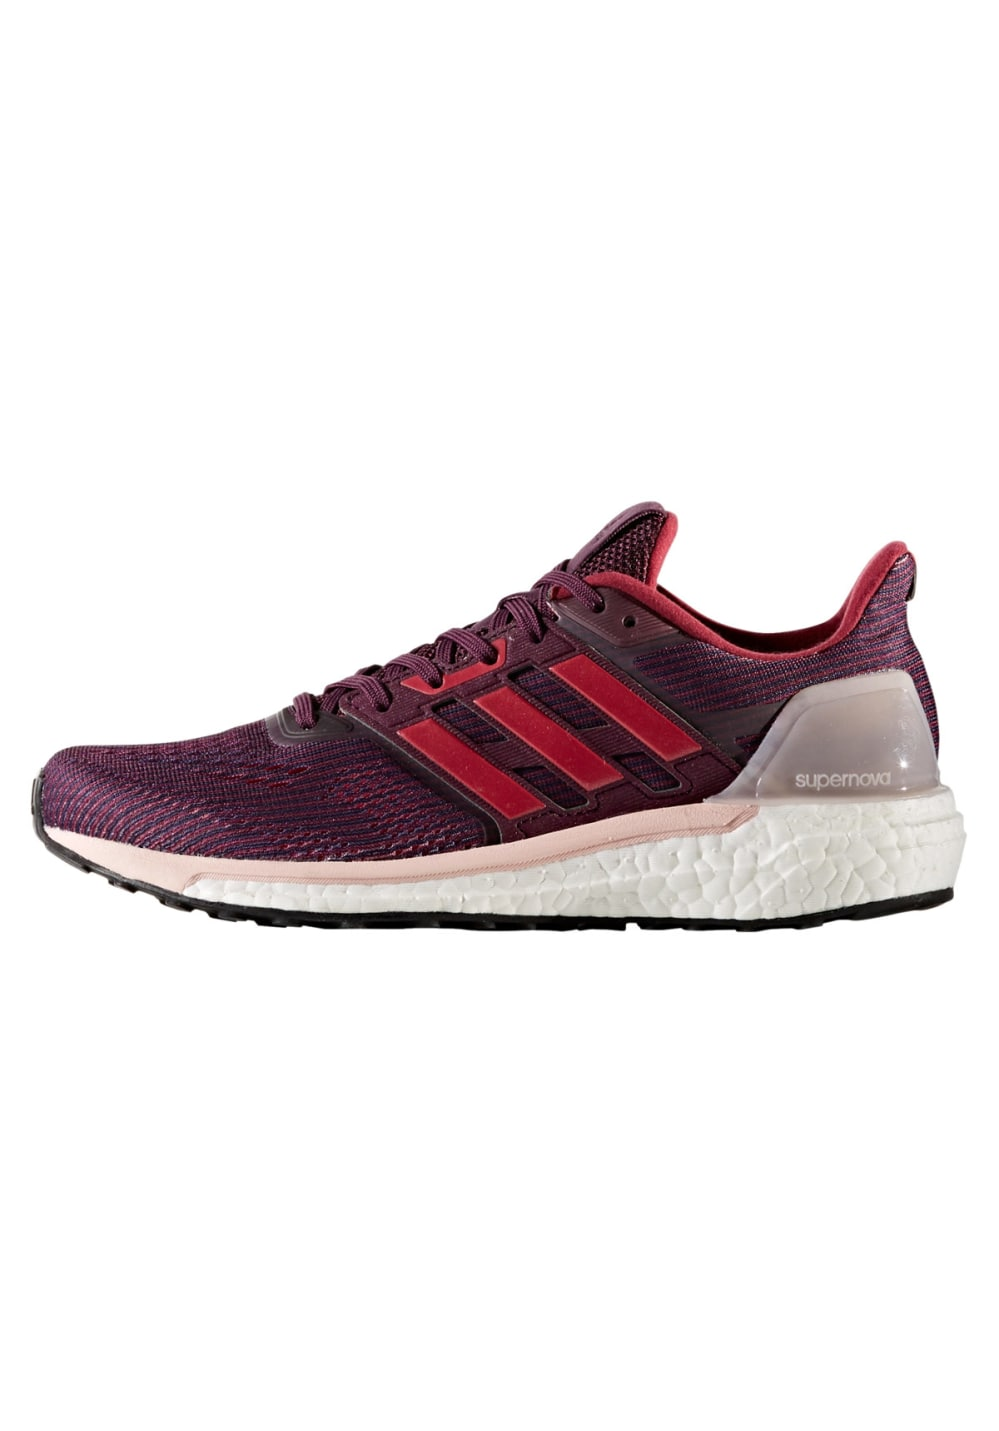 taille 40 b4fb4 fa6b6 adidas Supernova - Chaussures running pour Femme - Rouge